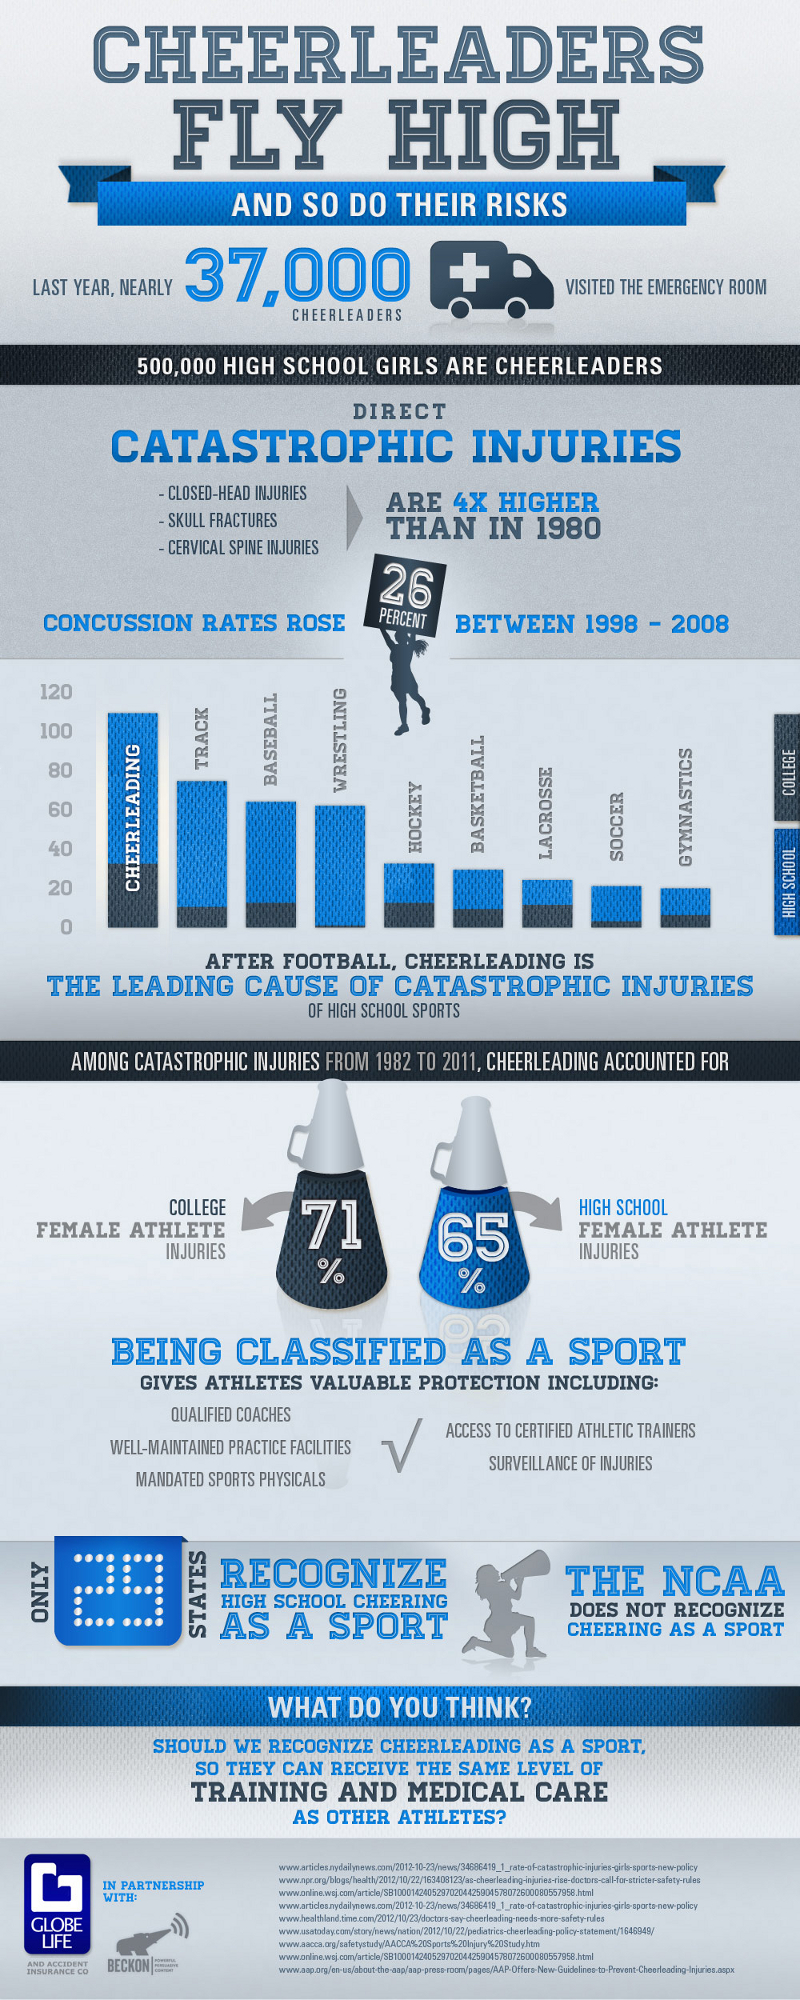 Cheerleader Injuries and Risks